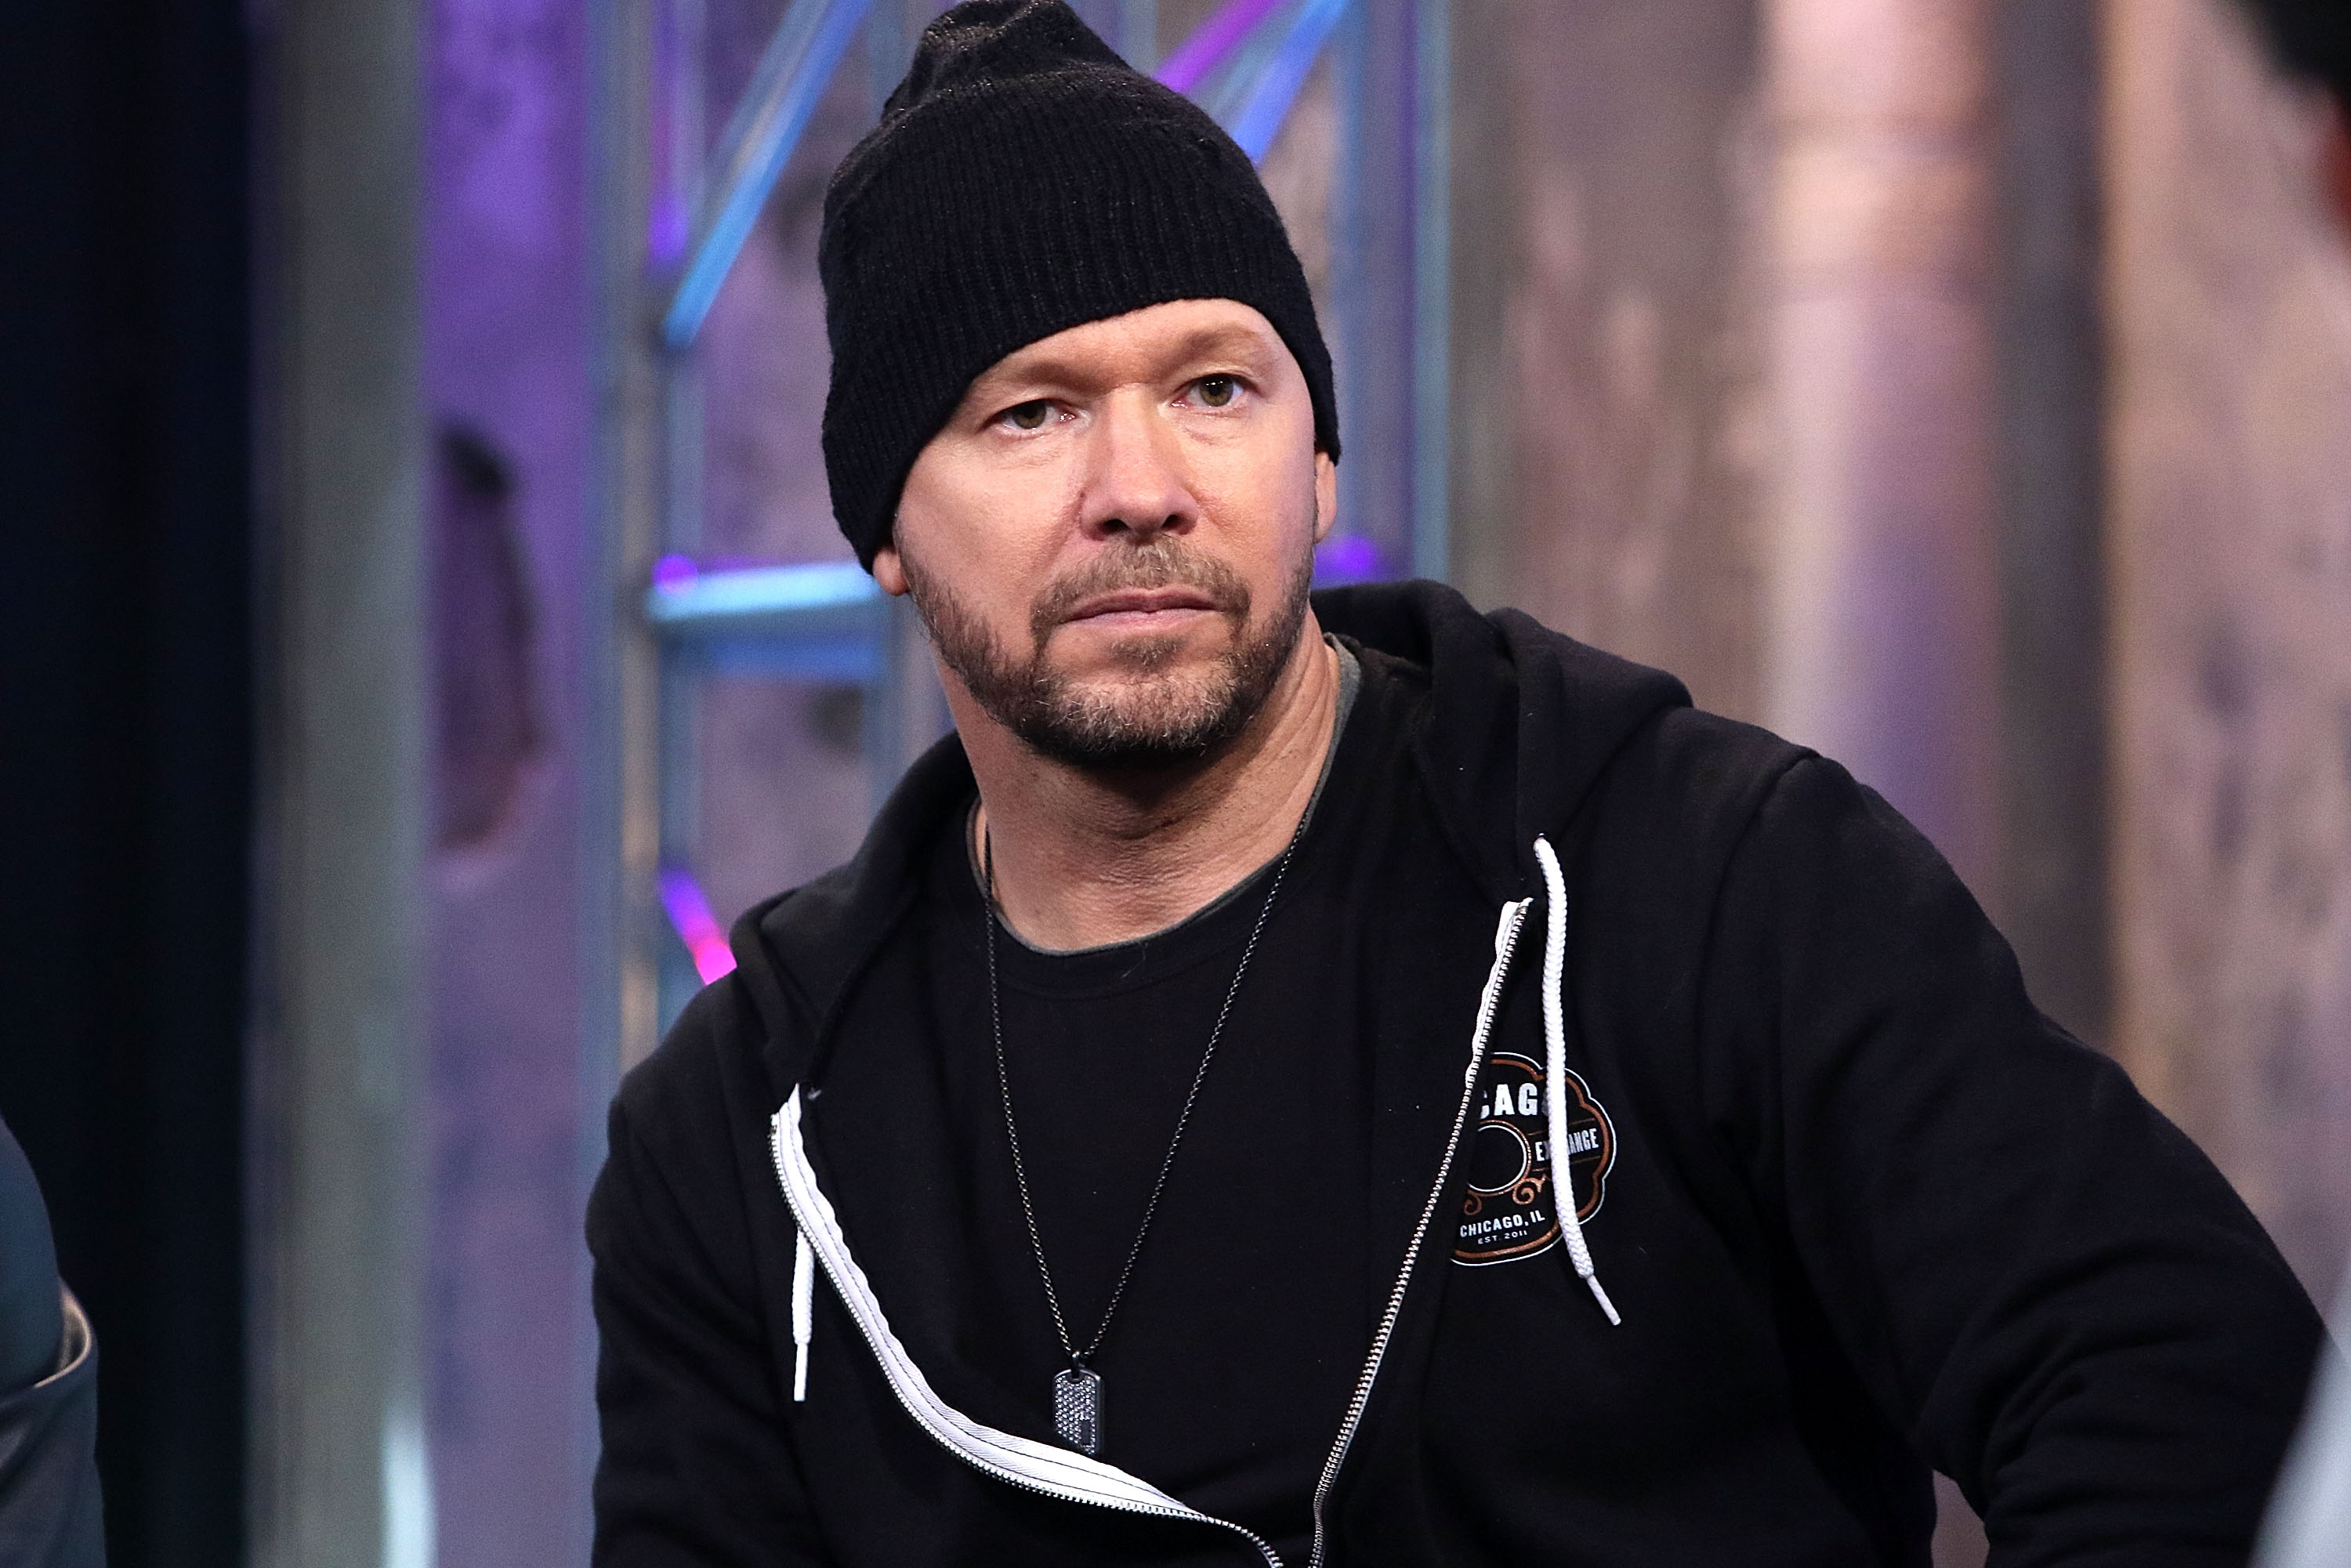 Donnie Wahlberg attends an AOL Build Speaker Series in New York on June 9, 2016 | Photo: Getty Images